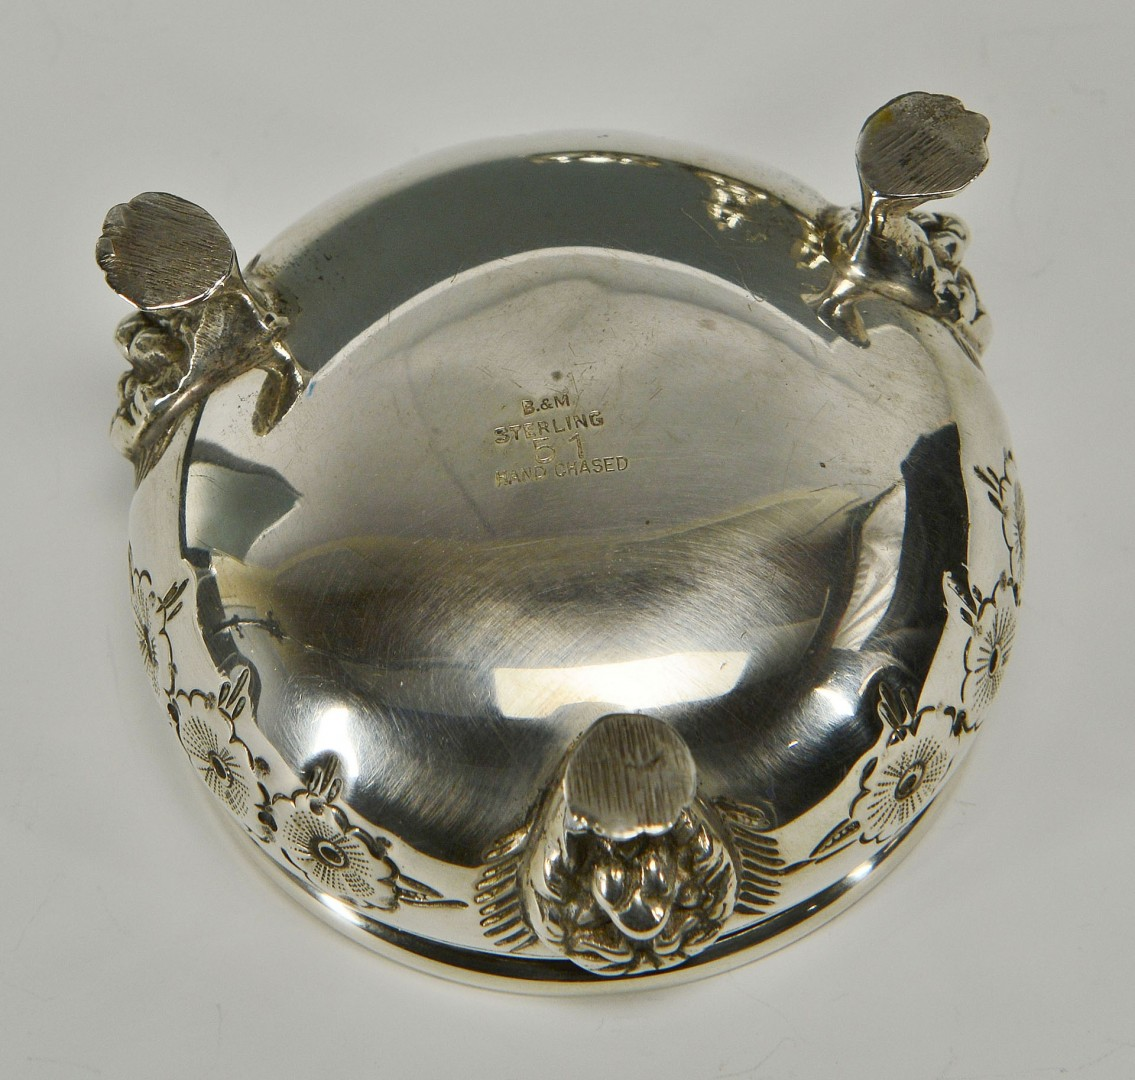 Lot 295: Hand chased sterling silver salts and peppers